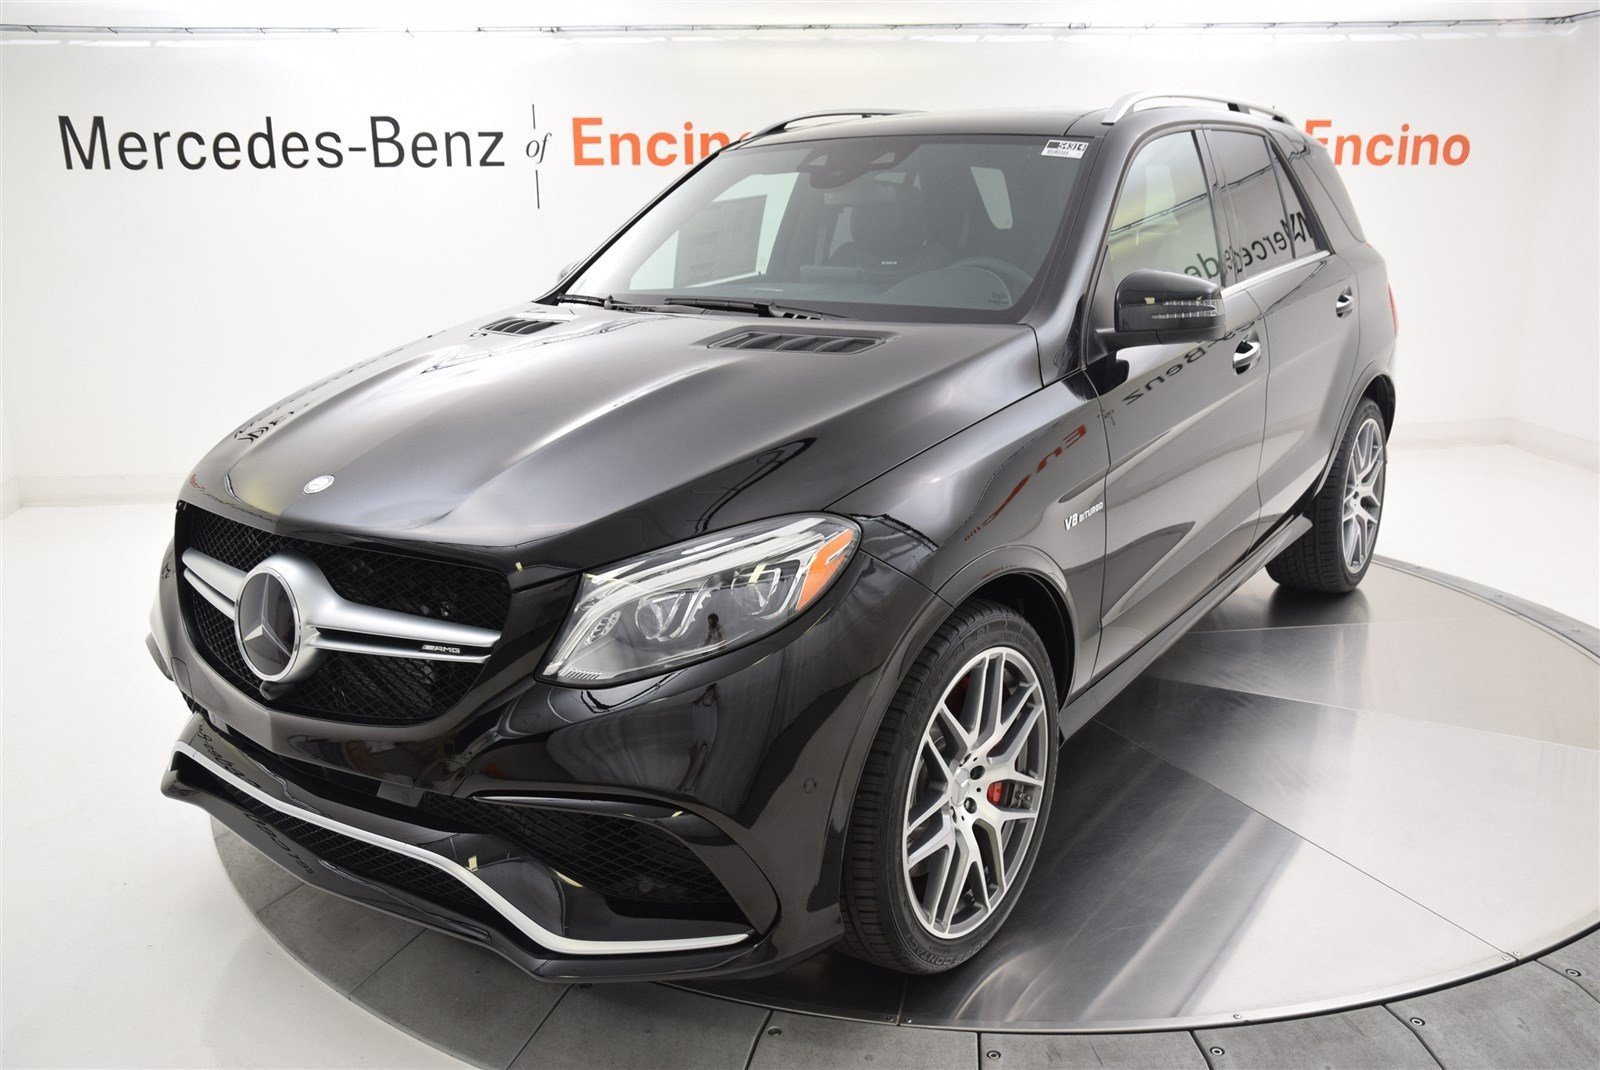 New 2016 Mercedes Benz Gle Amg 63 S Suv